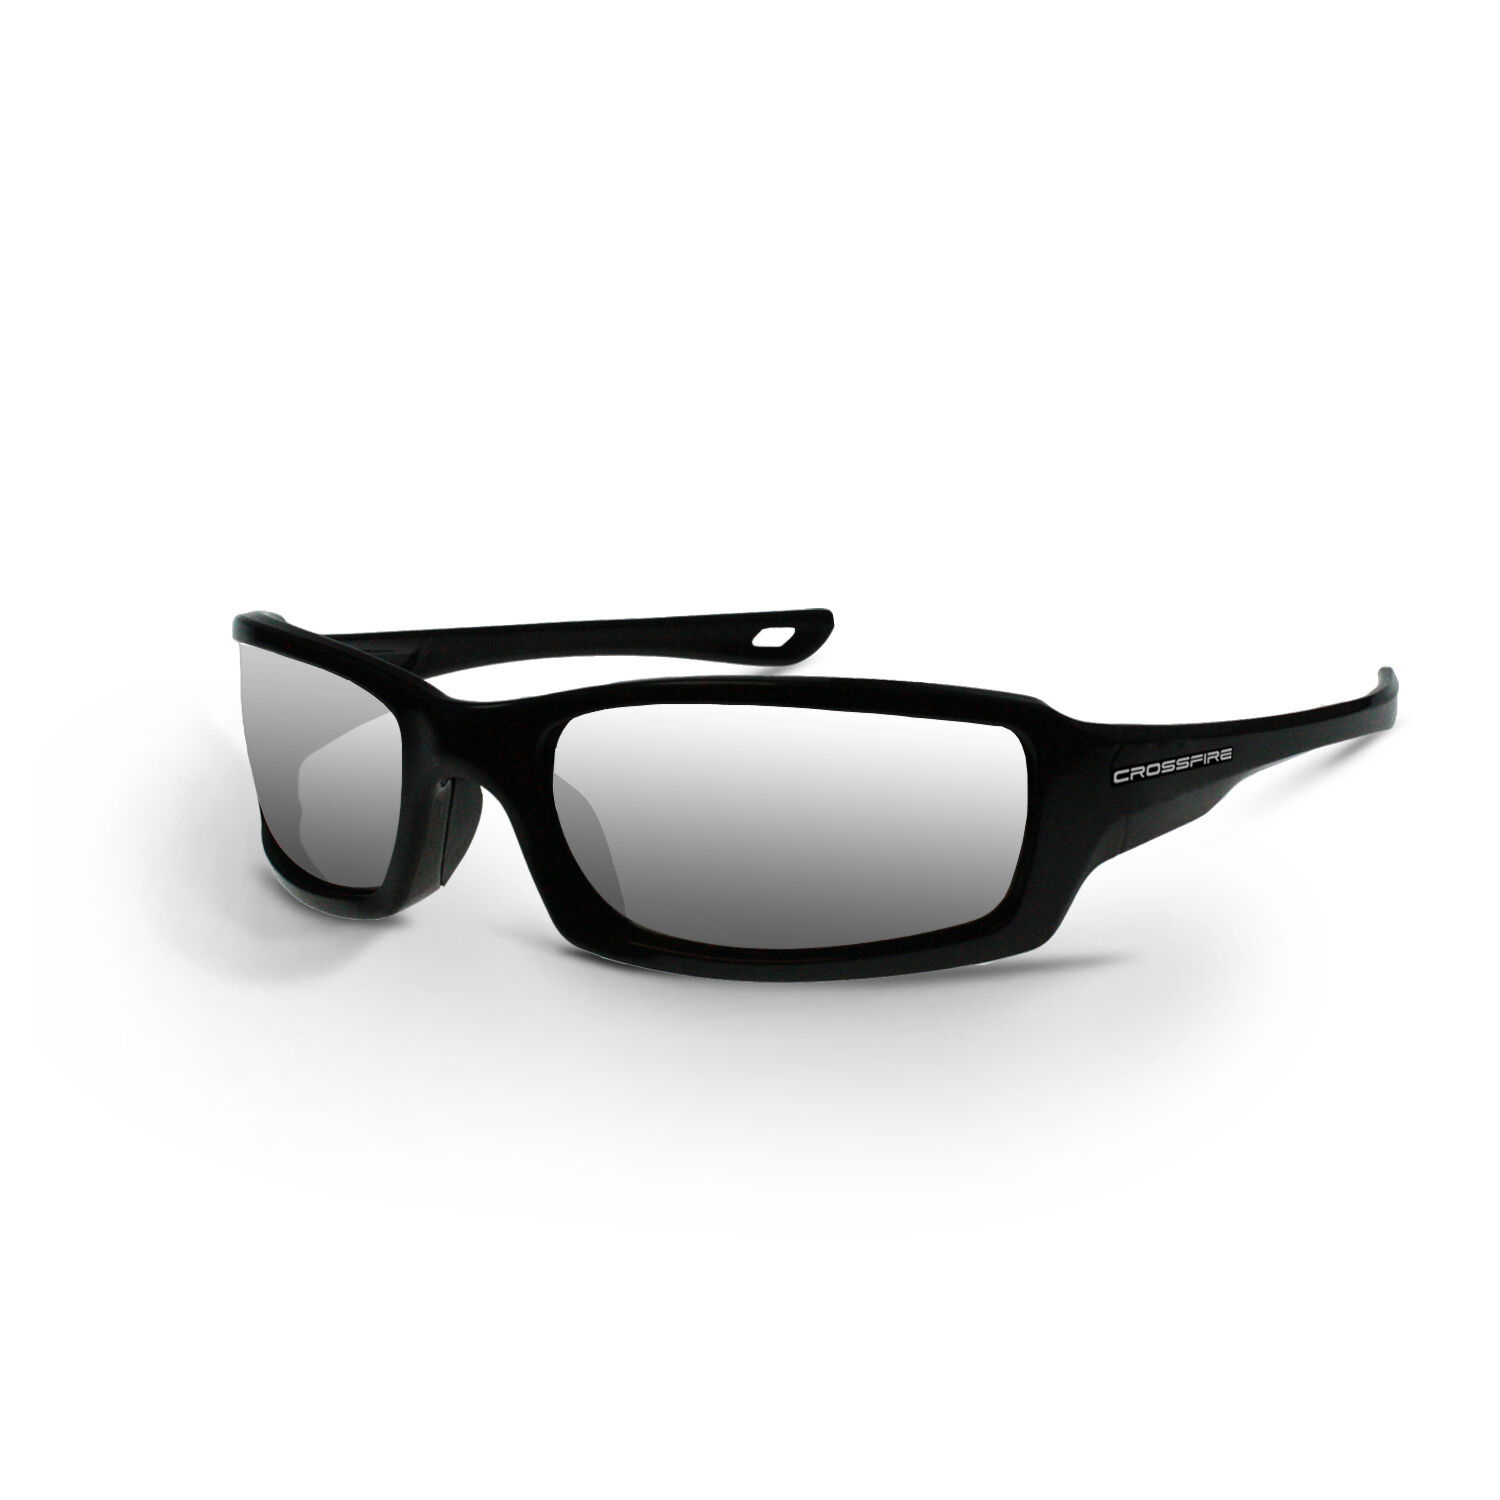 Mirror Frame Glasses Details About Crossfire Safety Eyewear Glasses With Silver Mirror Lens Black Frame